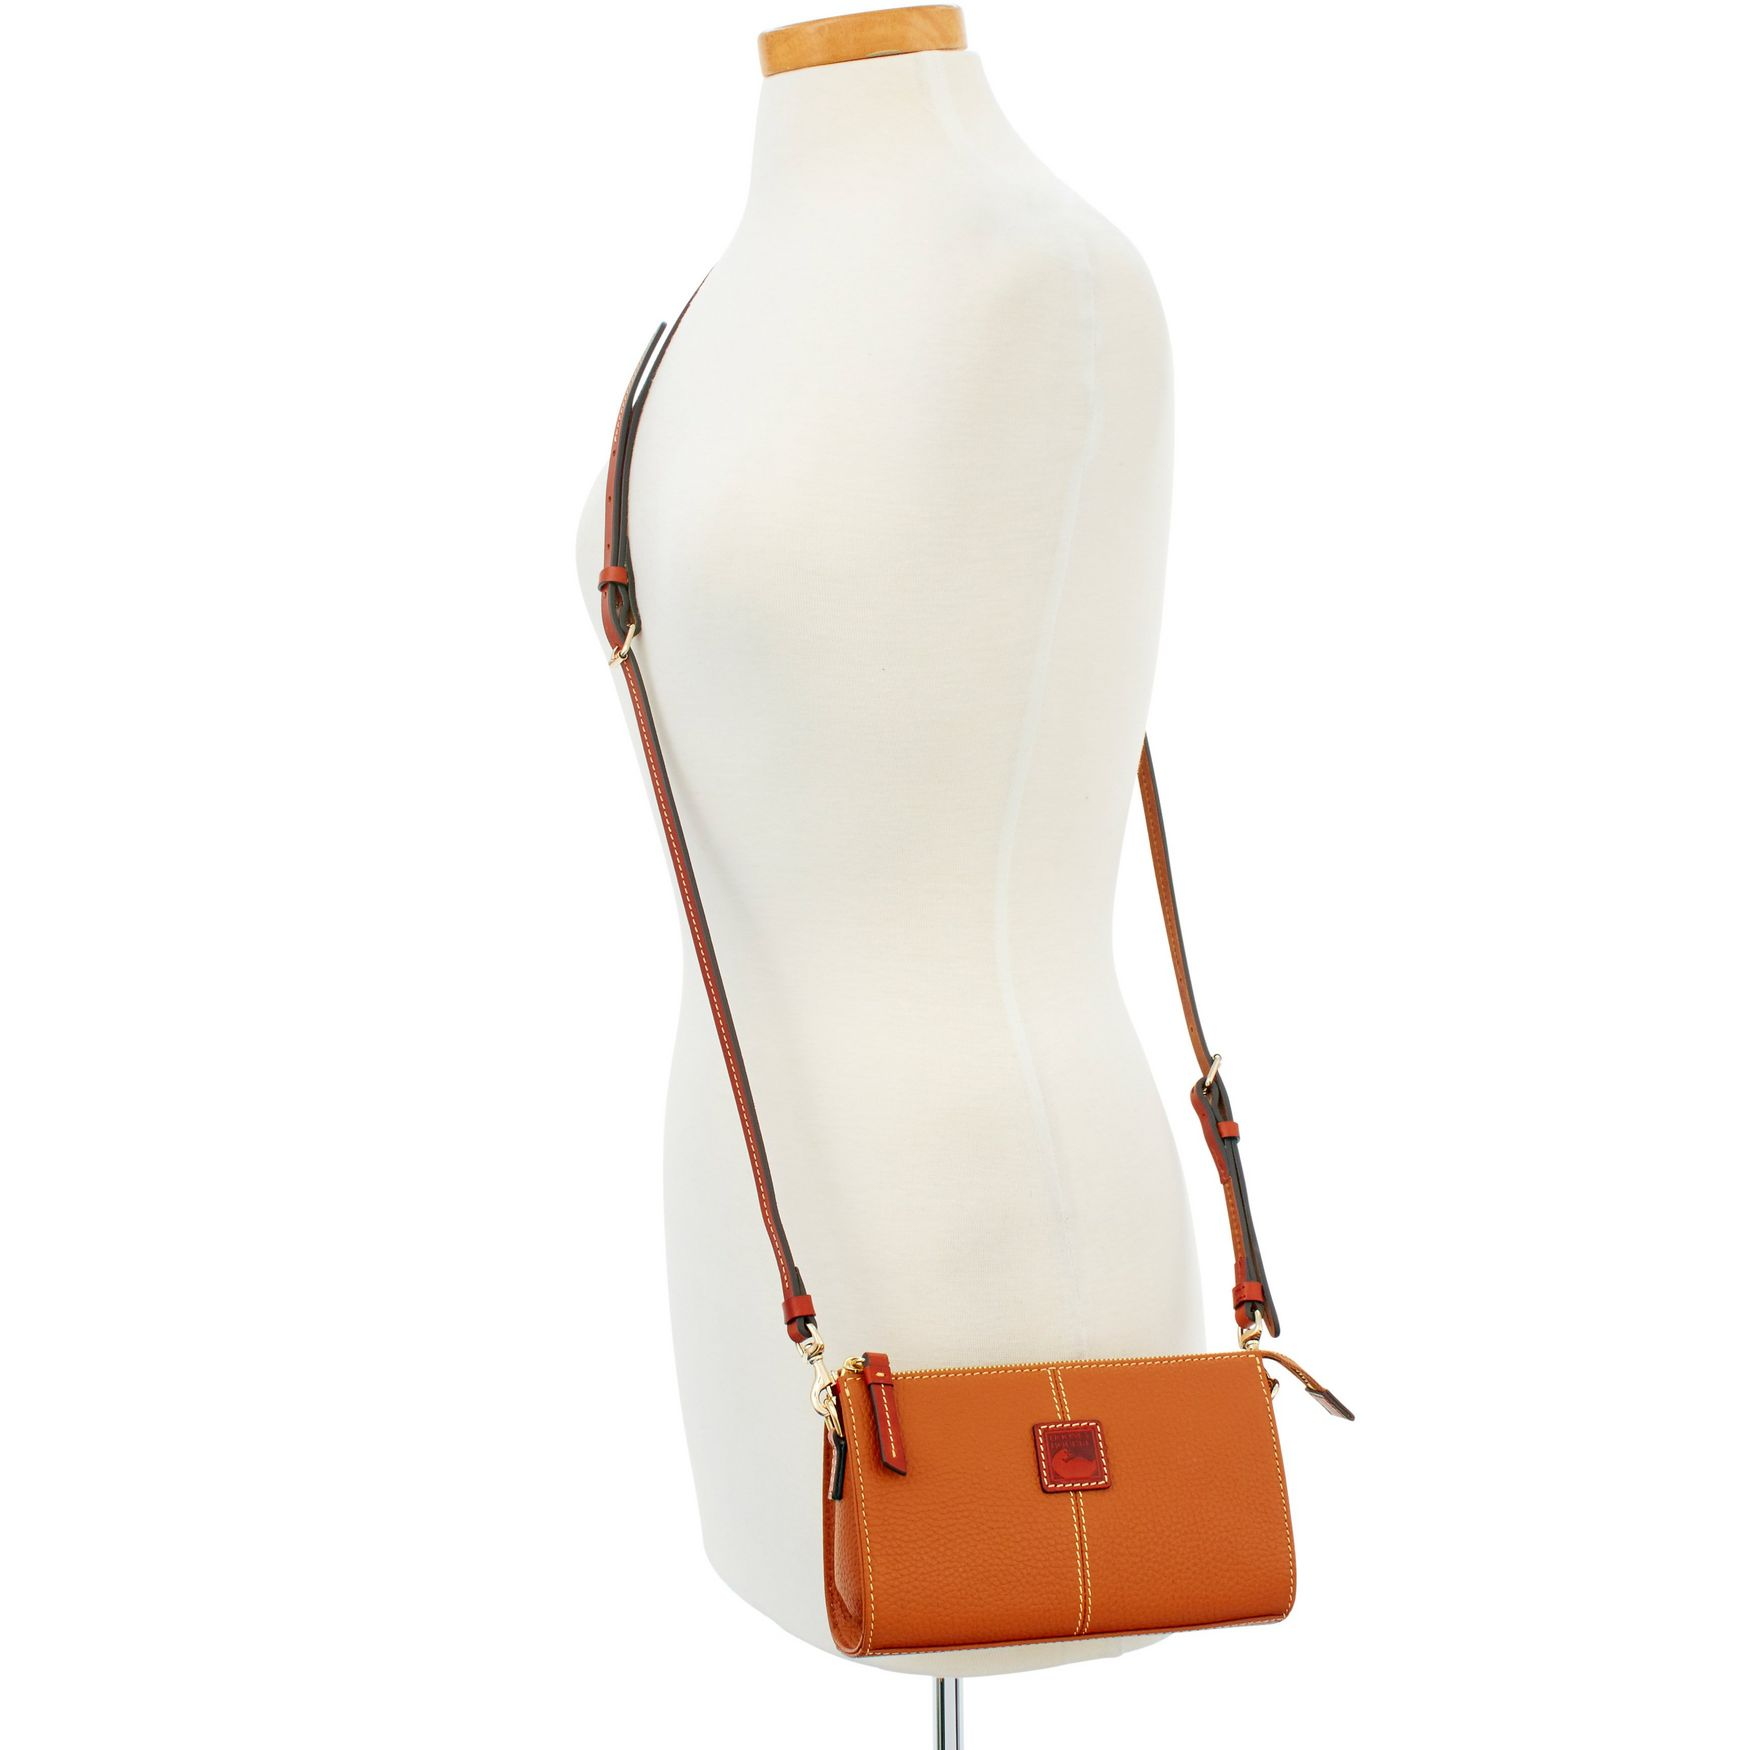 Dooney-amp-Bourke-Pebble-Grain-Small-Janine-Crossbody-Shoulder-Bag thumbnail 18